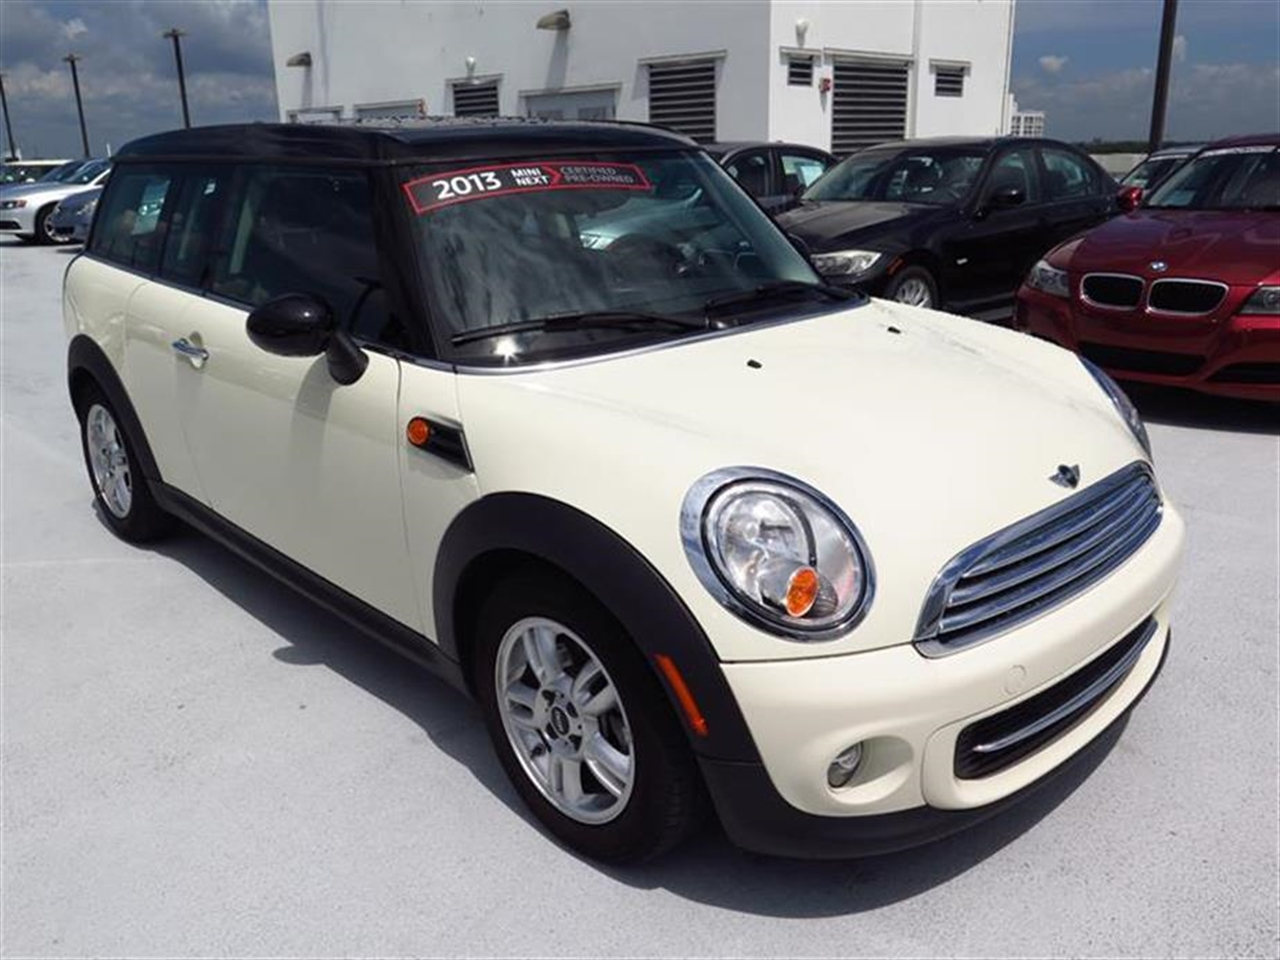 2013 MINI COOPER CLUBMAN 2dr Cpe 13522 miles 1 rear cup holder 2 12V pwr outlets 5050 split